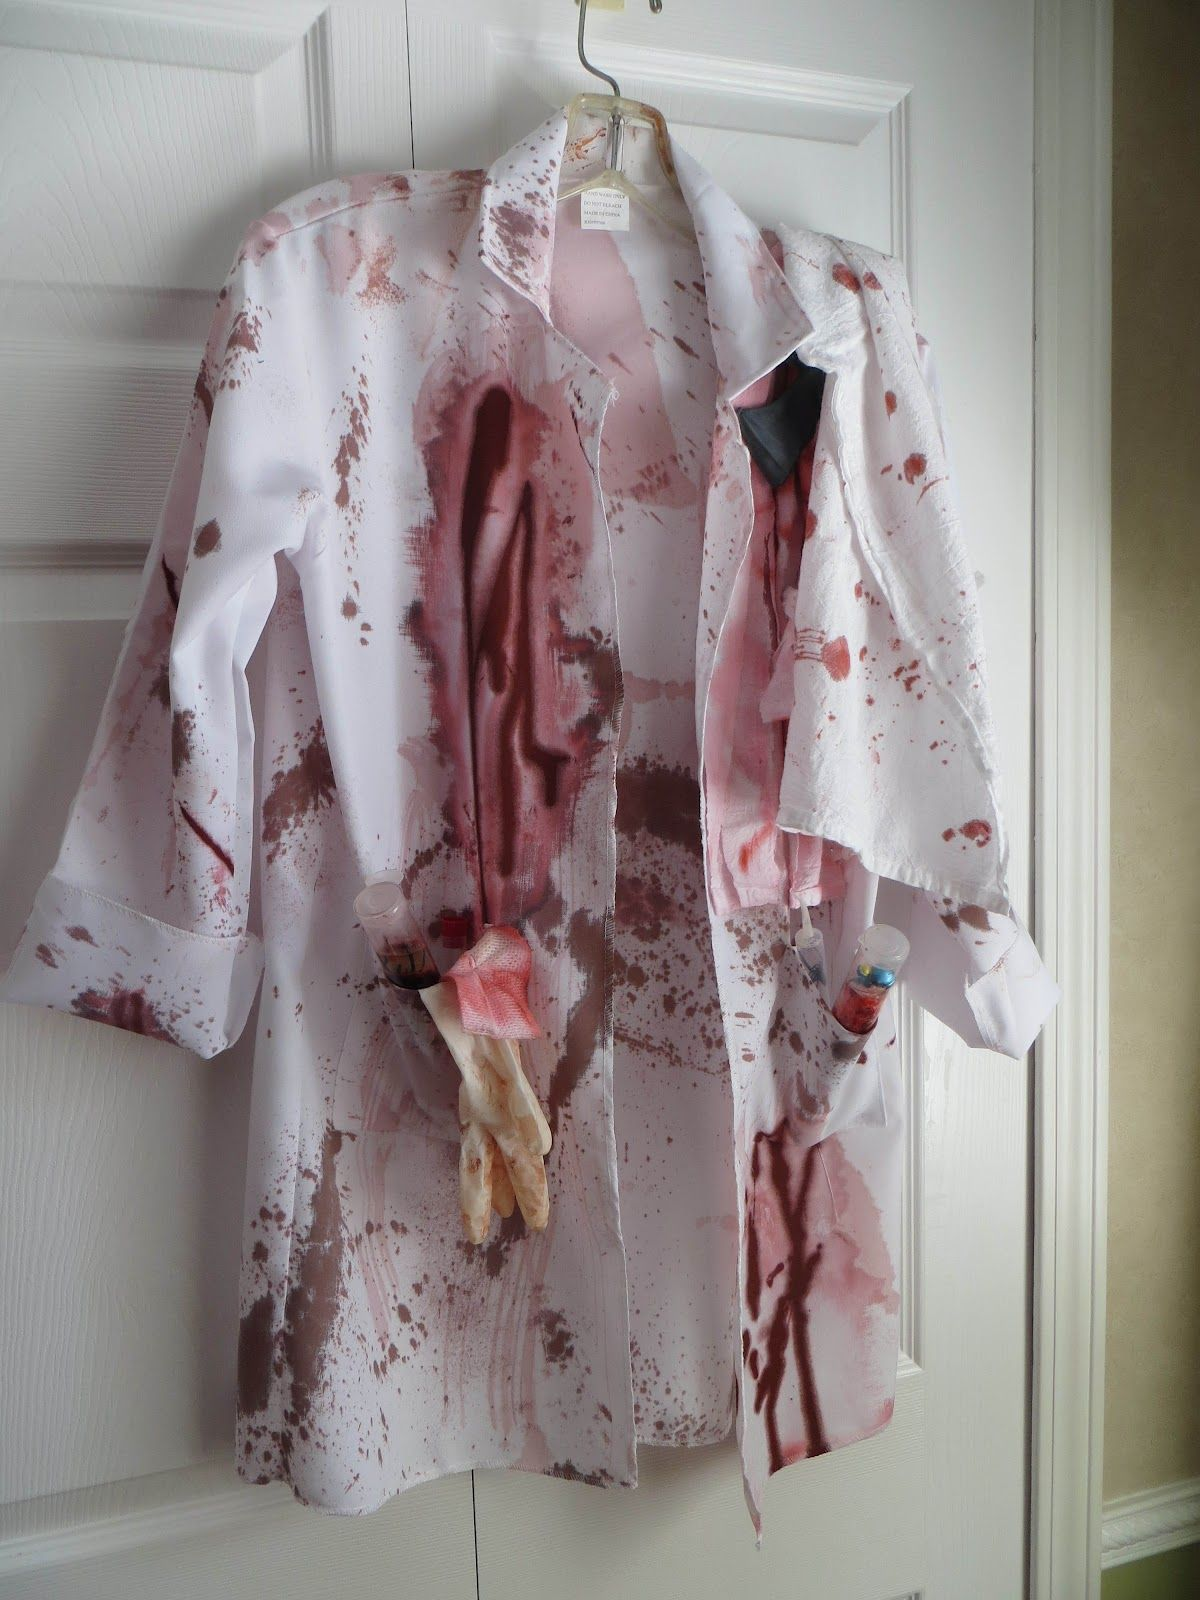 It's that time of year for scare and fright. My 9-year old grandson is all about gore this year. It was decided (with parental guidance...